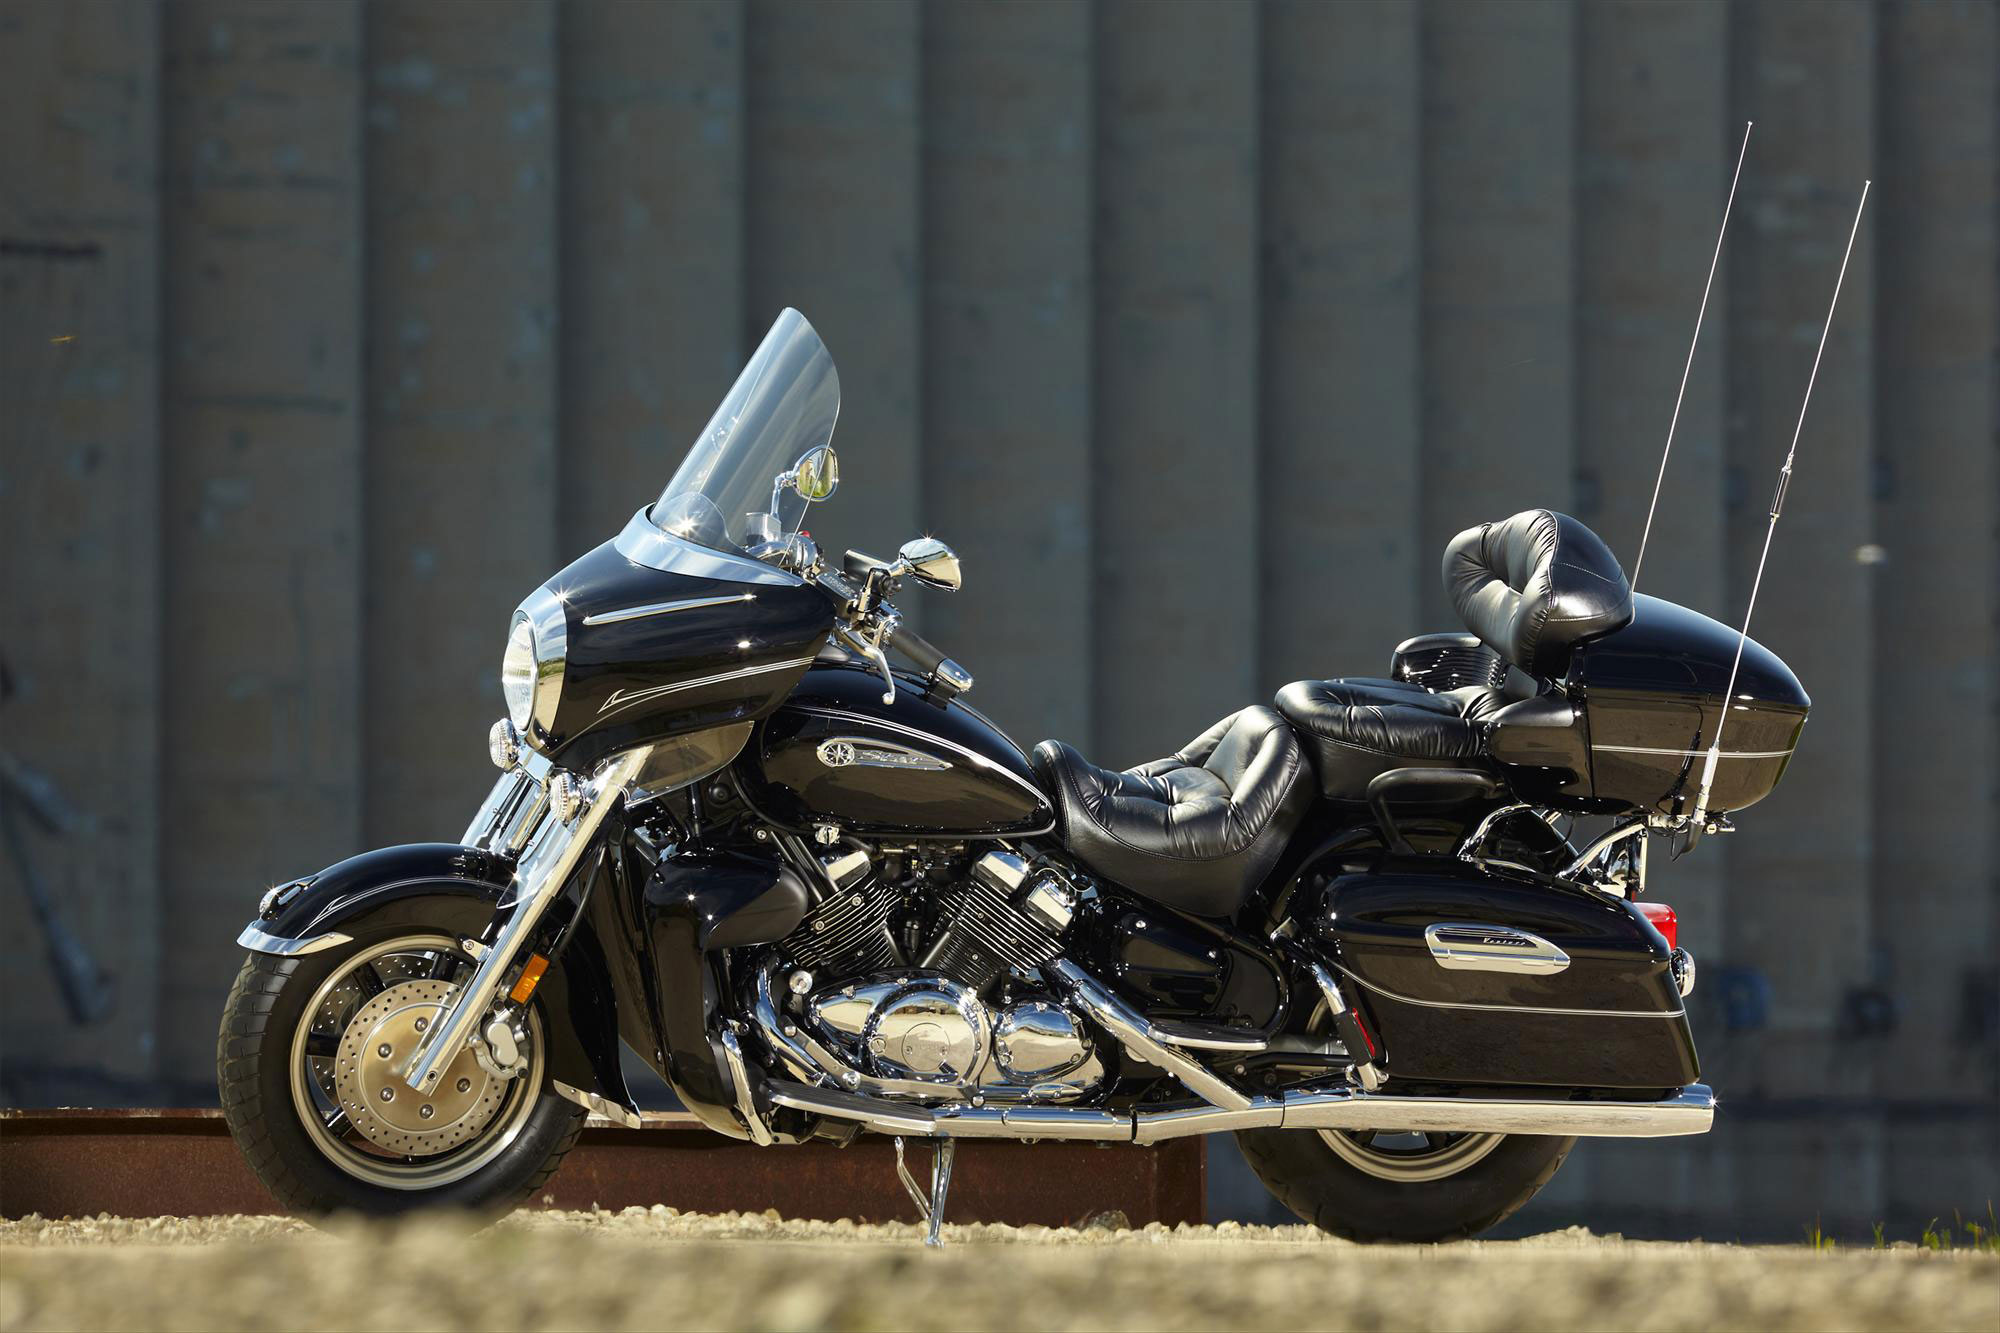 Yamaha Royal Star Venture S 2011 #14